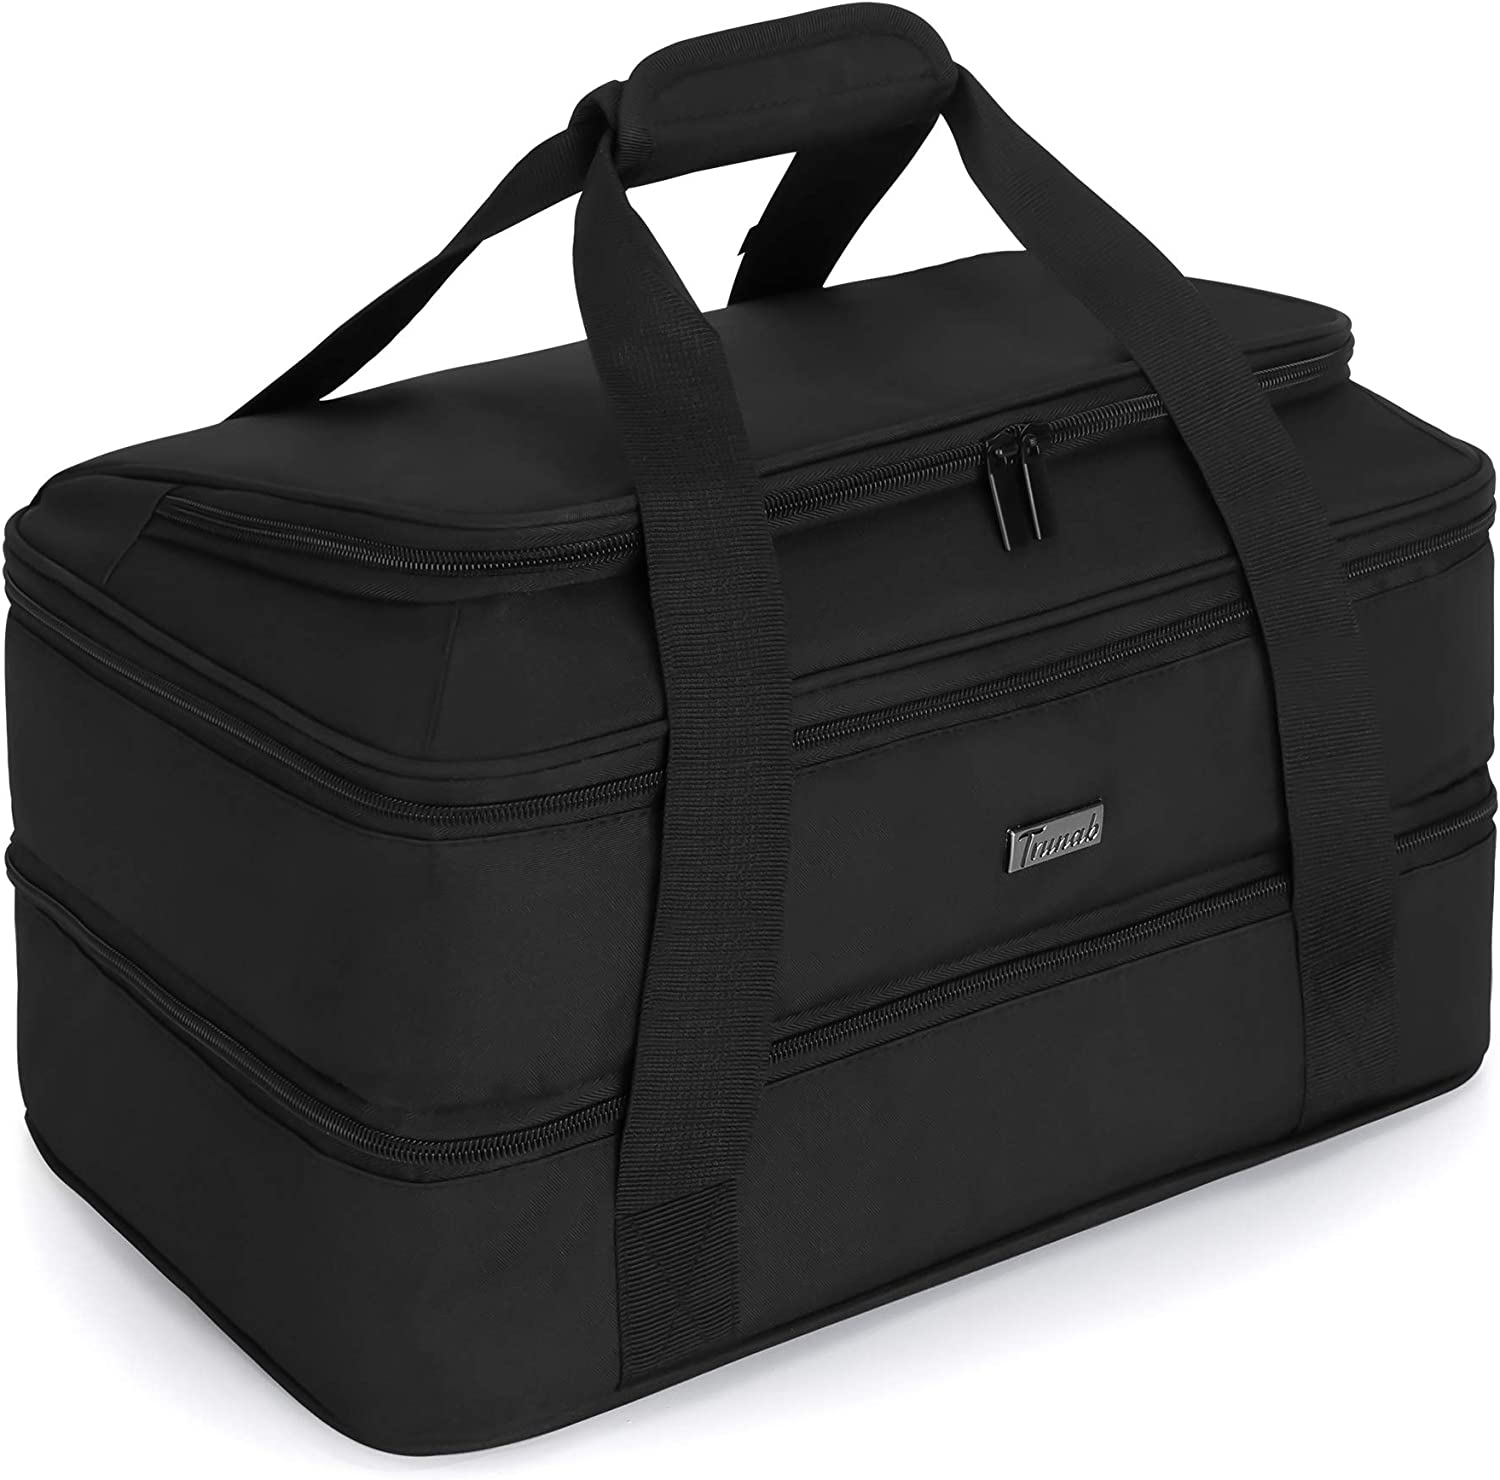 Trunab Double Decker Casserole Carrier for Hot or Cold Food Insulated Thermal Tote Bag for Picnic, Fits 9